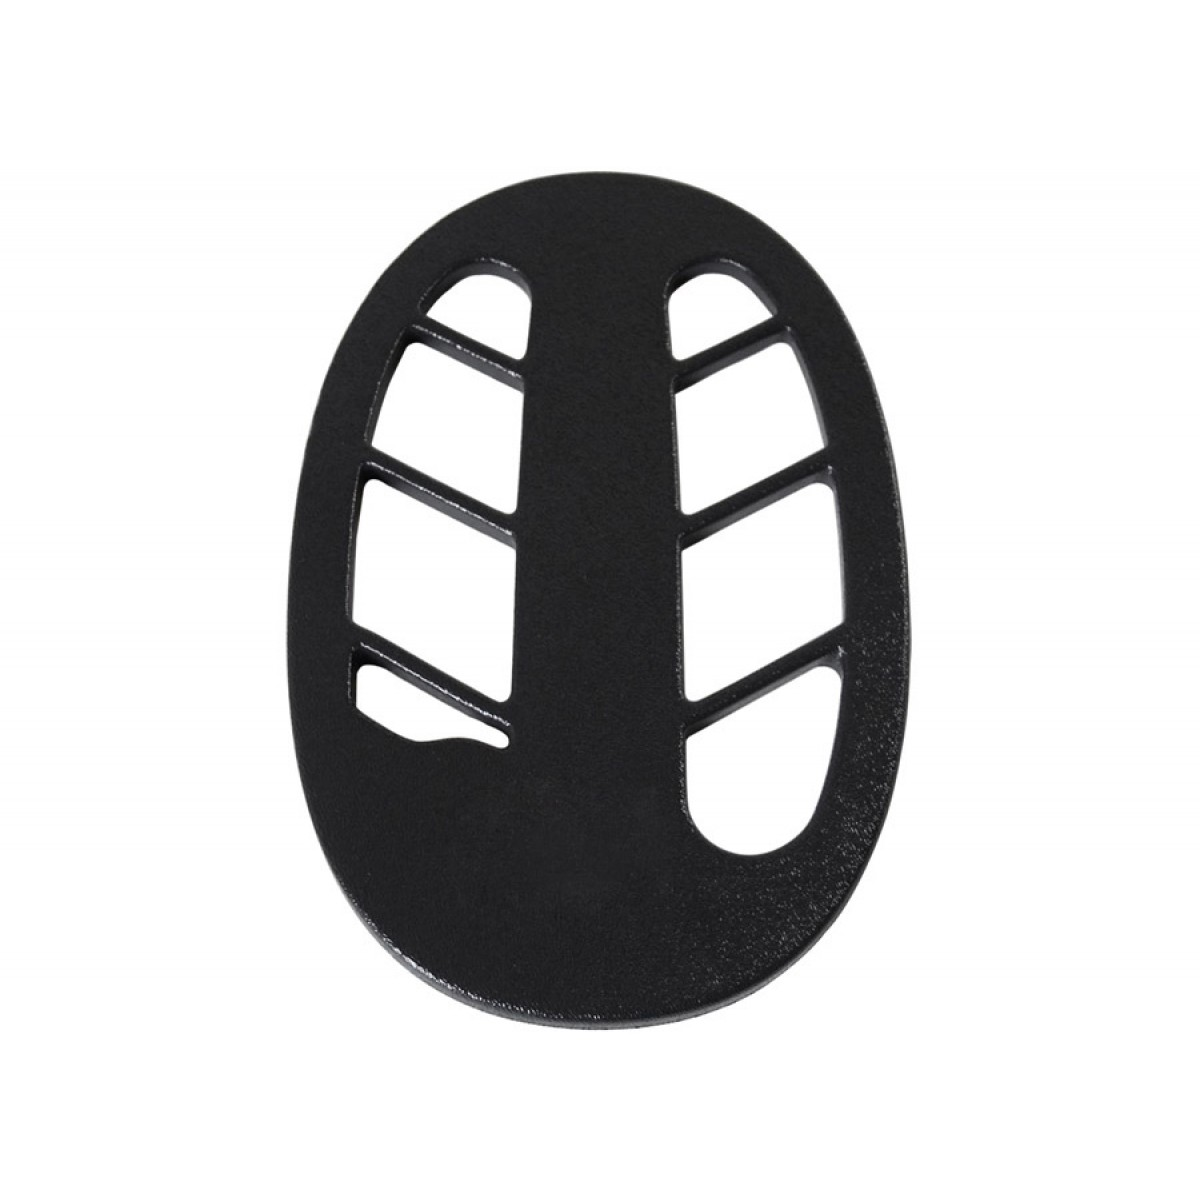 Teknetics 11 Biaxial Coil Cover T2 F4 F75 TCOVER Image 1